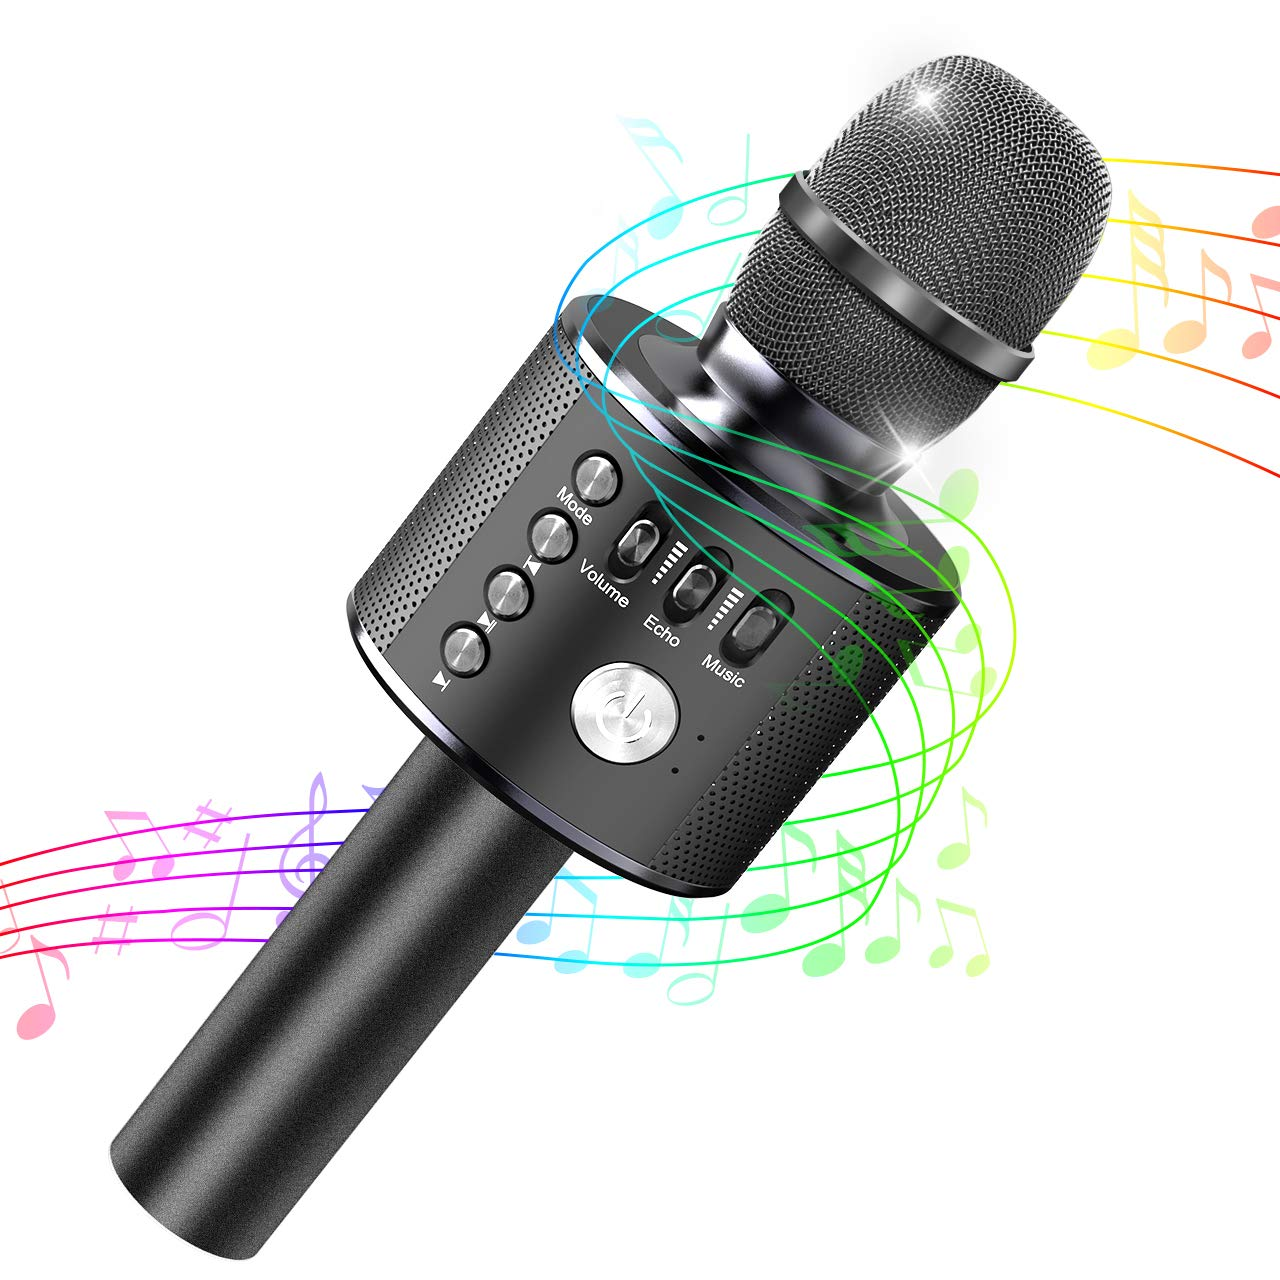 Tesoky Kids Karaoke Microphone,Best Wireless Bluetooth Karaoke Machine for Kids Fun at Party Home,Portable Handheld Microphone Best Indoor Outdoor Toys Gifts for Kids Age 3 4 5 6 7 8 9 10 (Black)